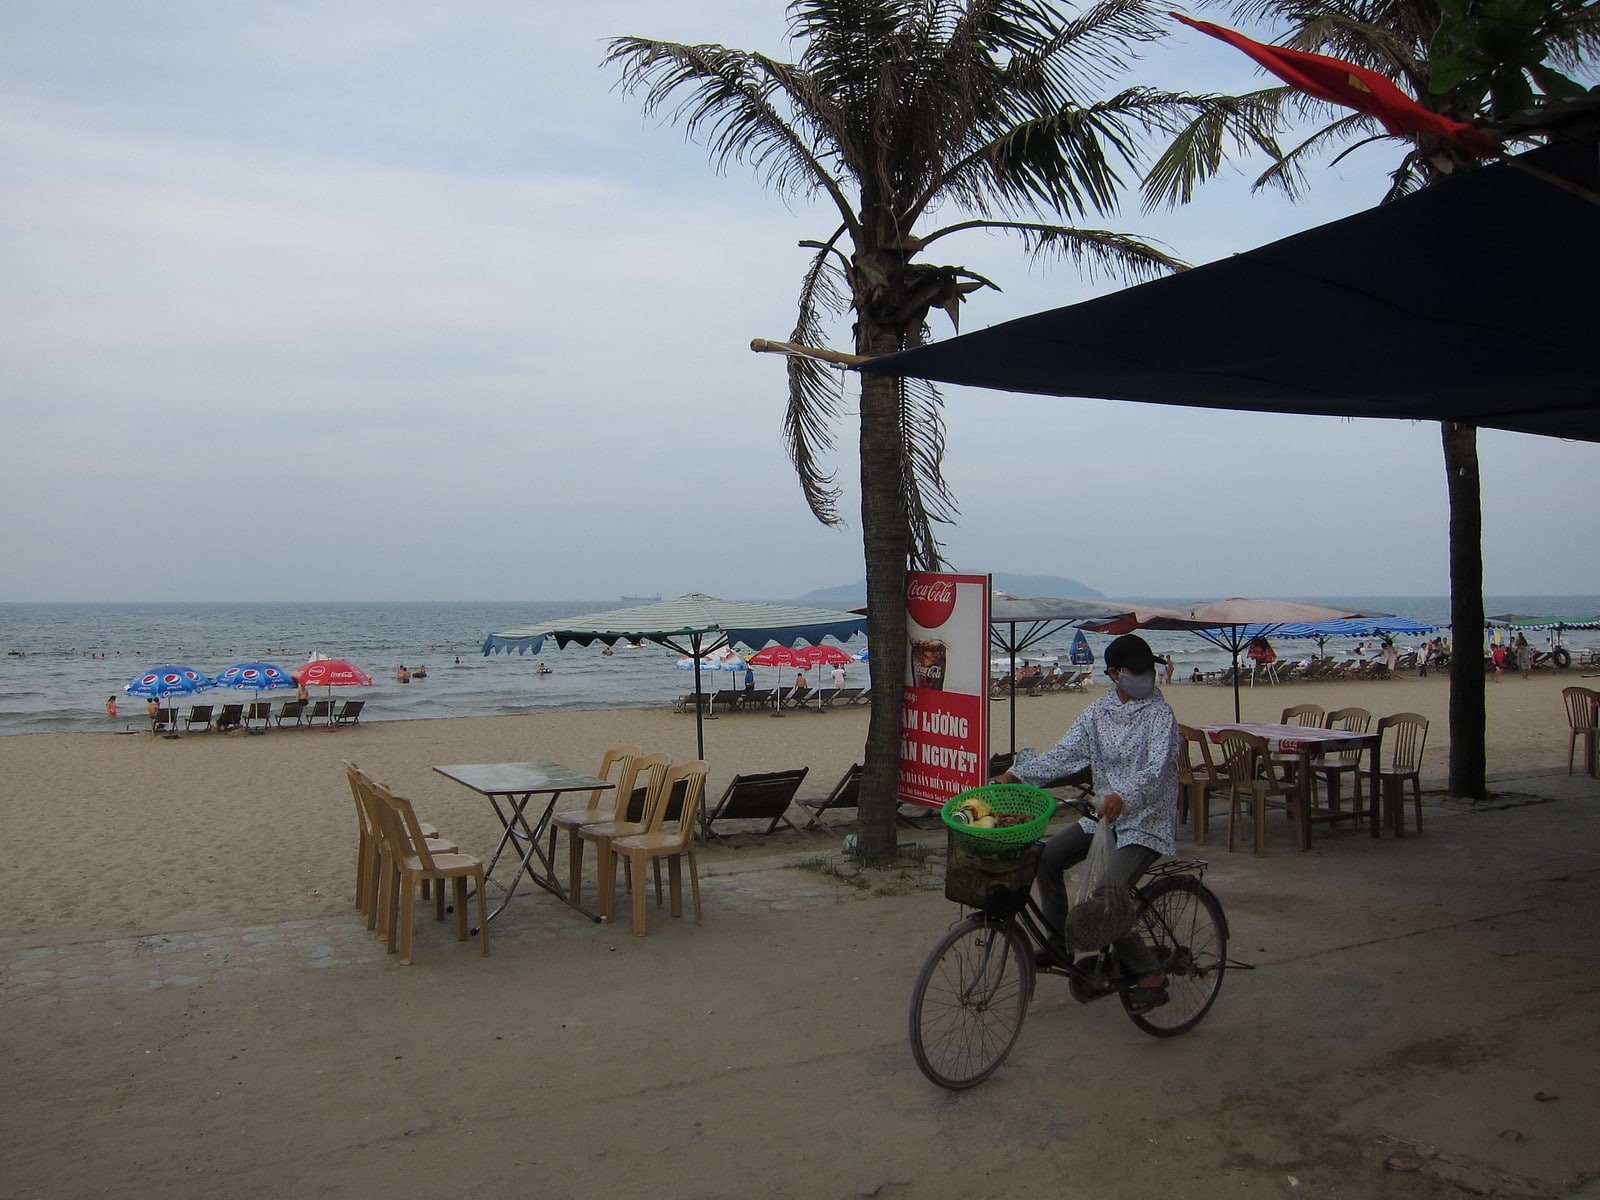 Cua Lo Beach in the Nghe An Province, Vietnam